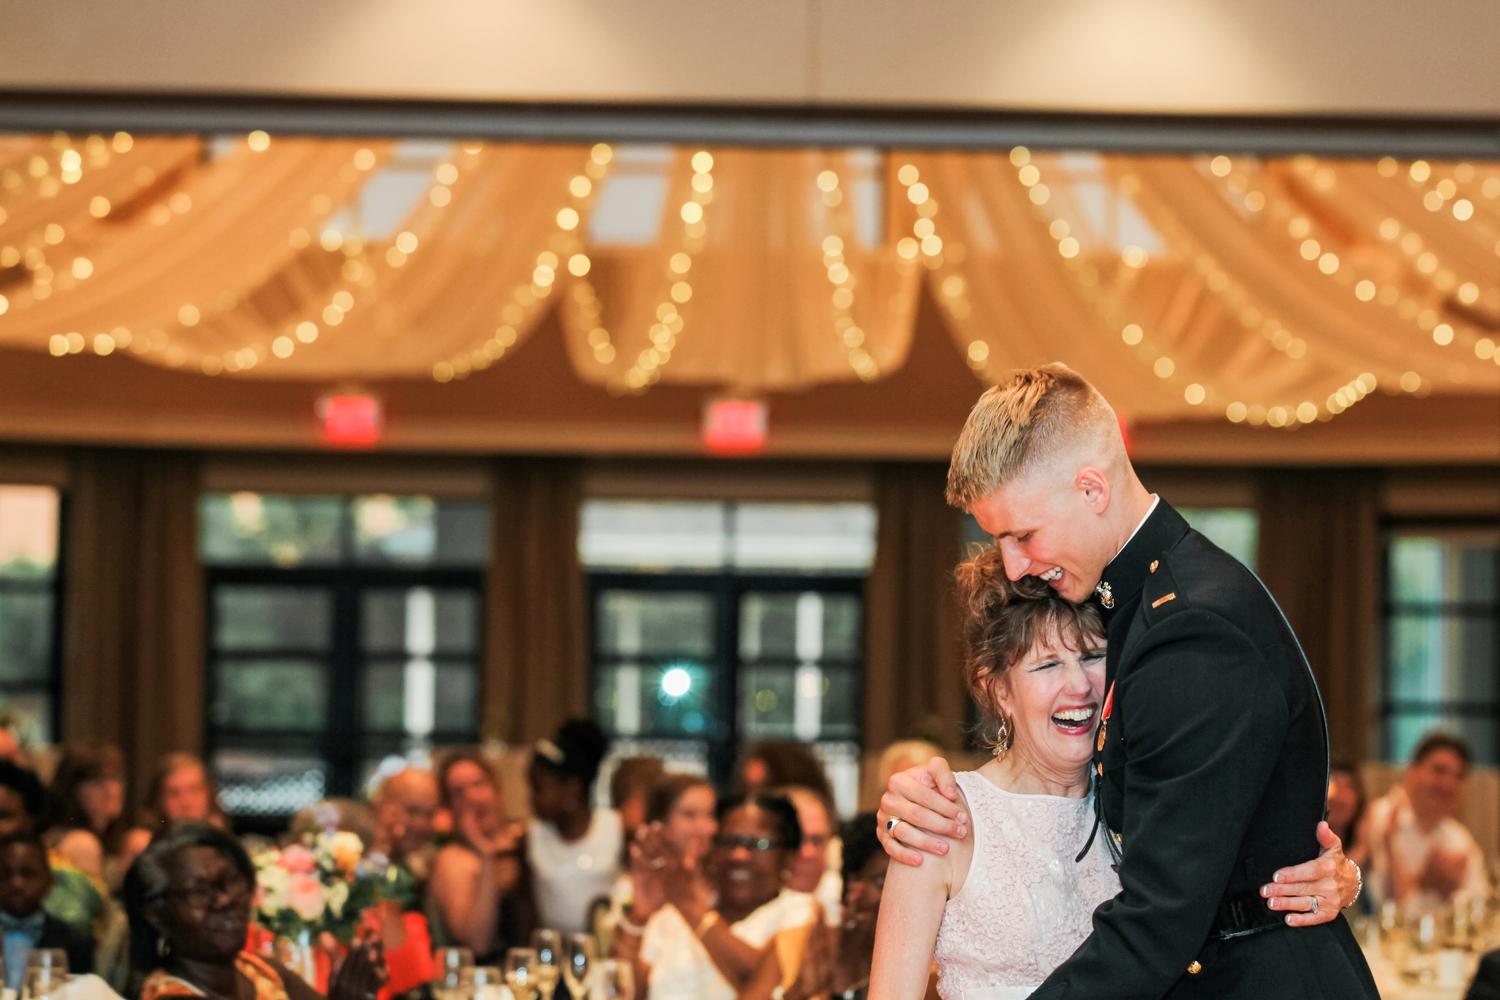 Wedding-at-The-Savannah-Center-West-Chester-Ohio-Photography-Chloe-Luka-Photography_7559.jpg